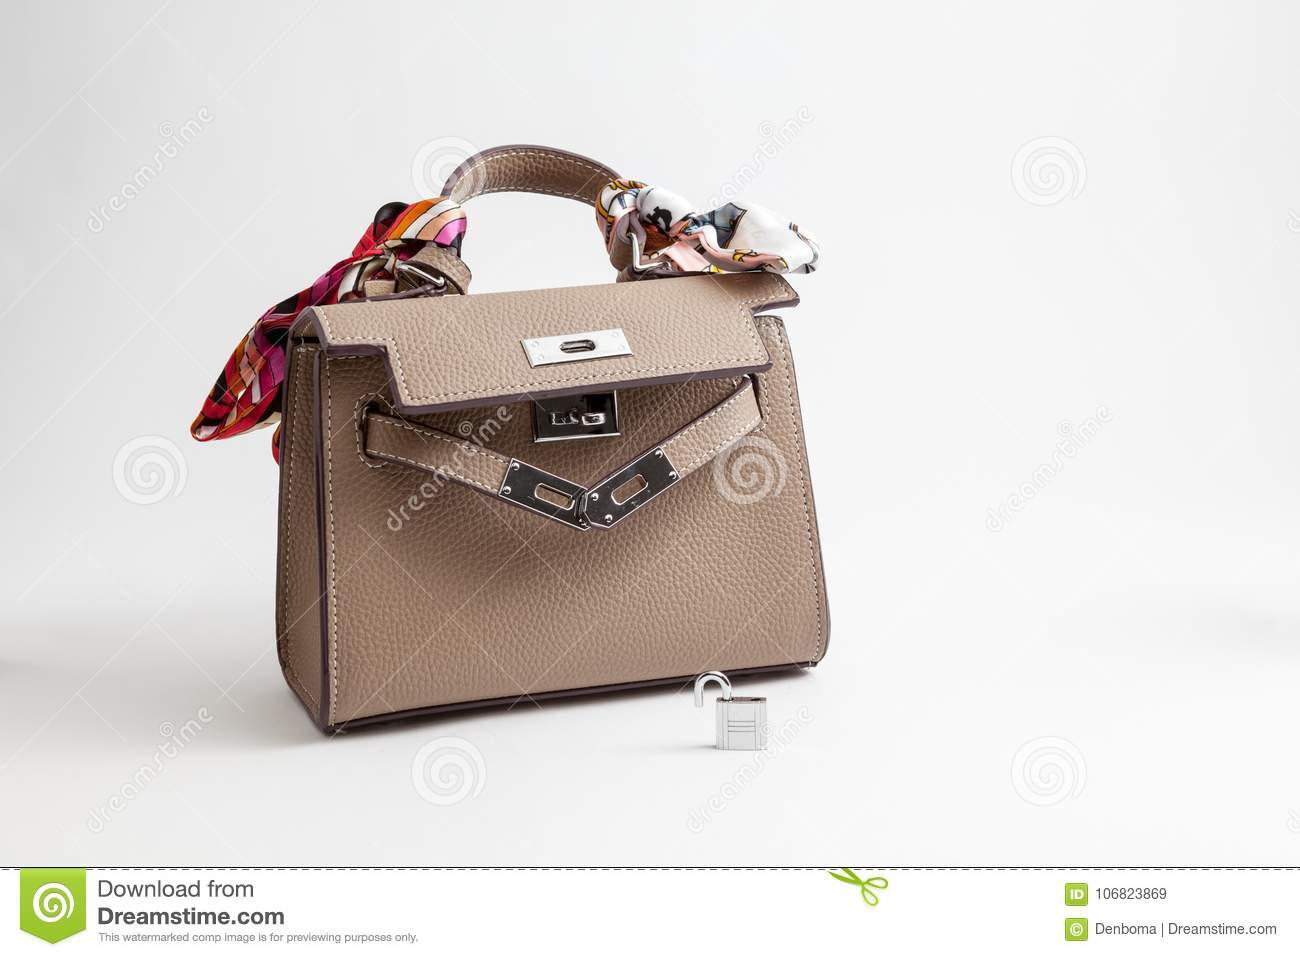 An handbag for women